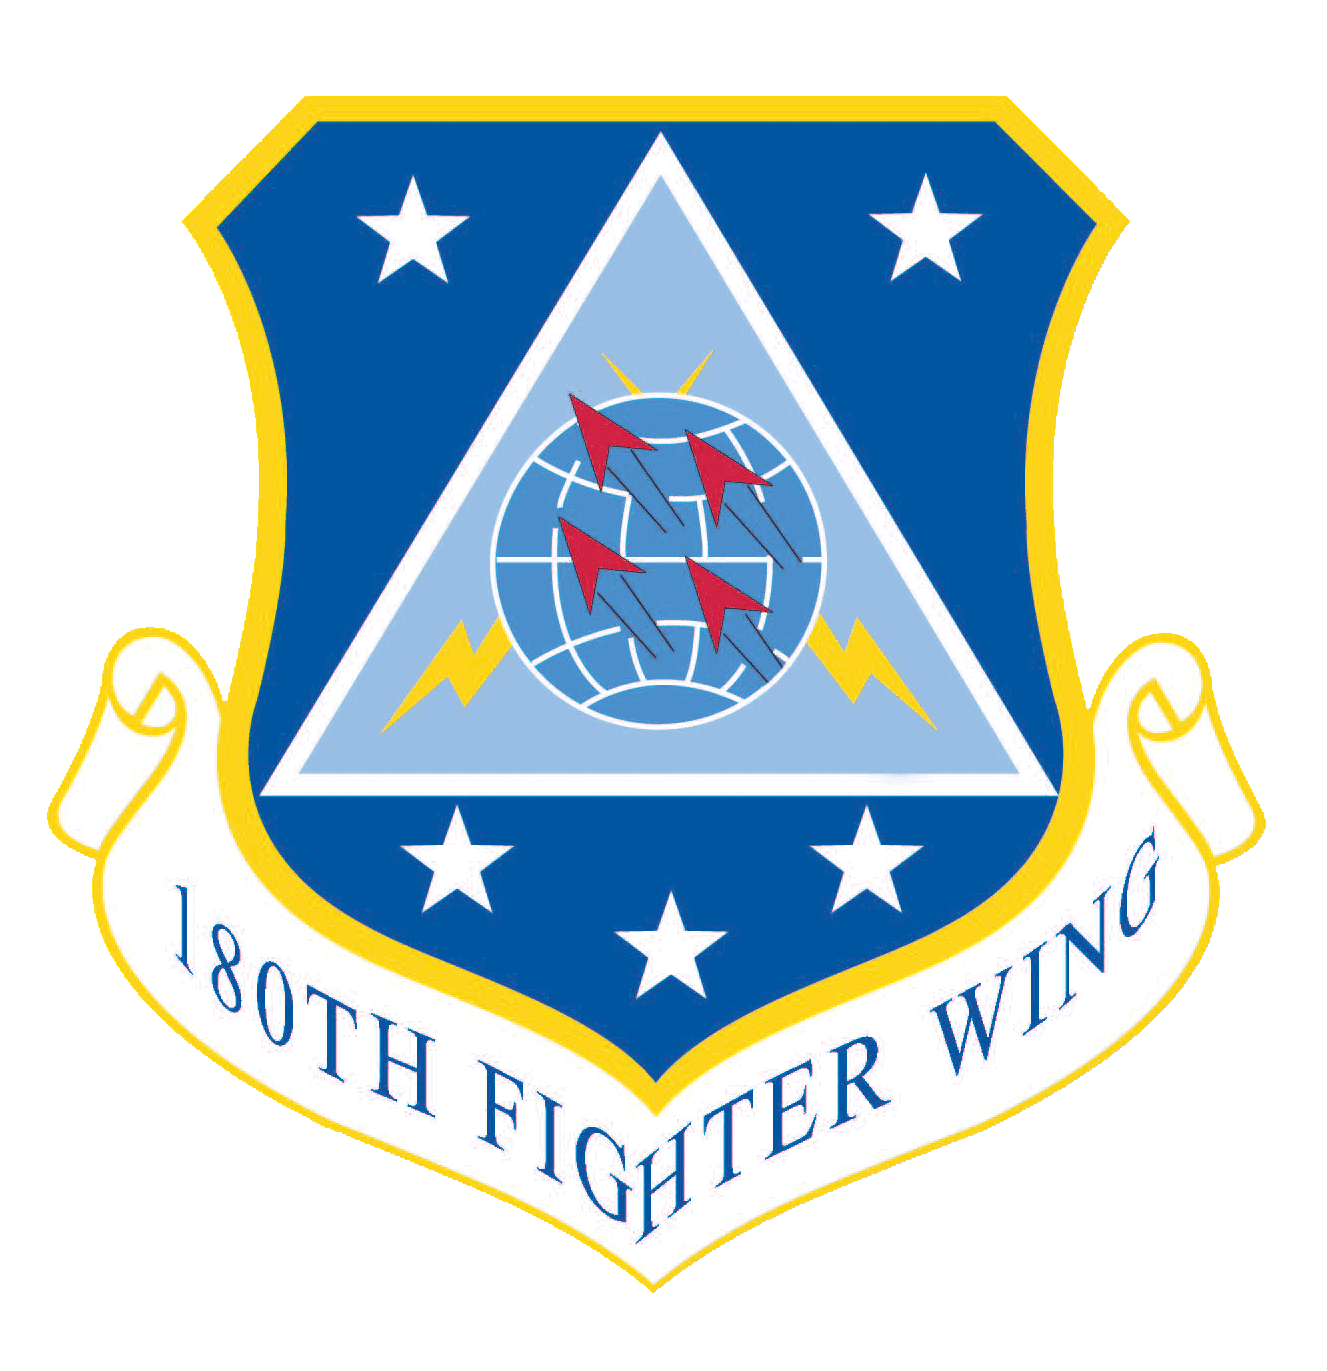 180th Fighter Wing patch